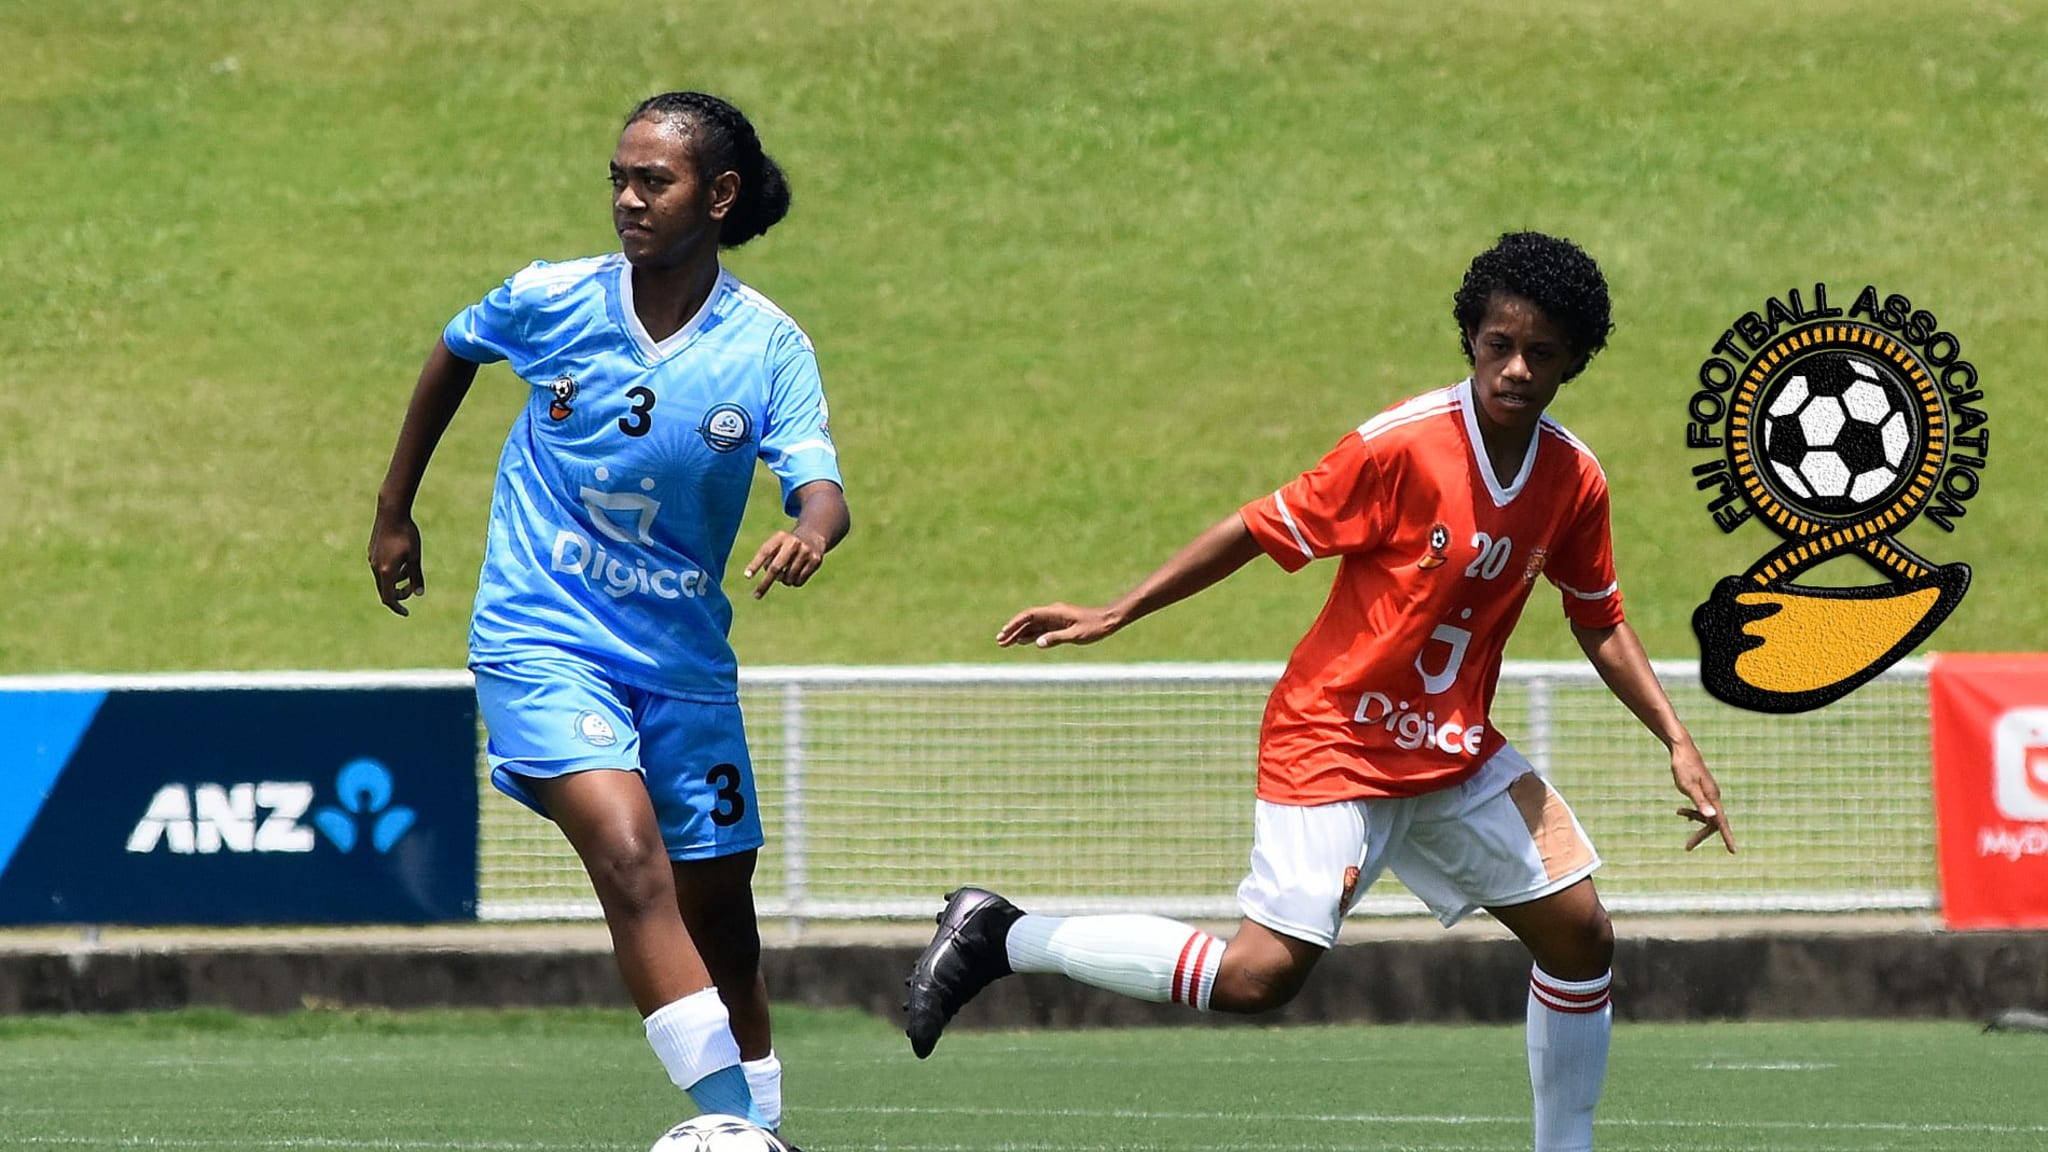 Opening round of the Fiji Women's Super League